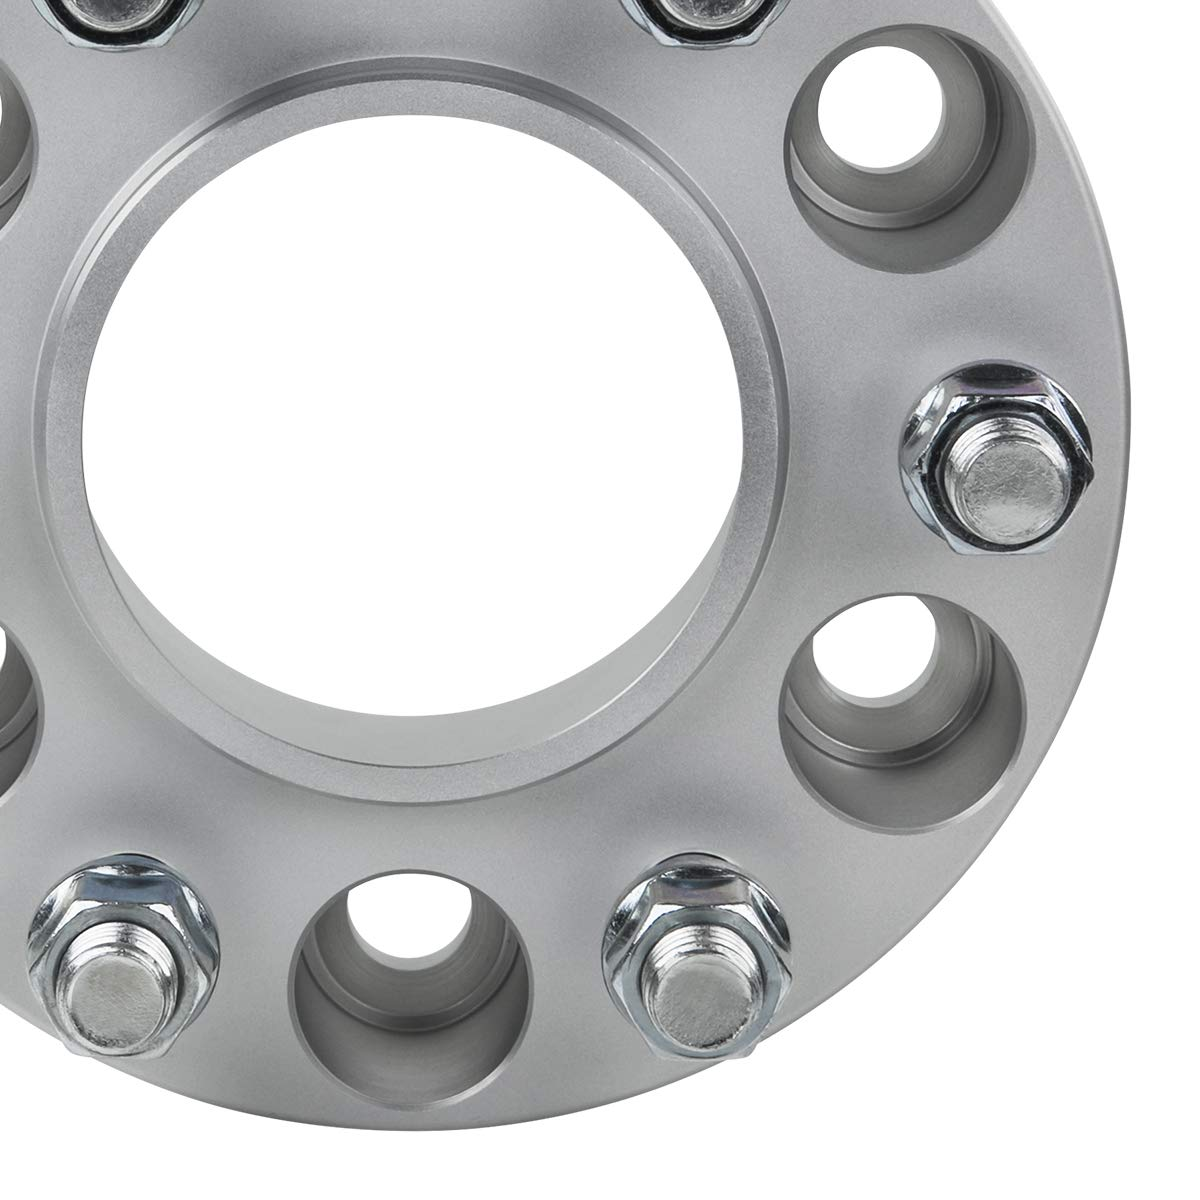 M12x1.5 Studs Supreme Suspensions 2X 1.5 Hub Centric Wheel Spacers for 1995-2018 Toyota Tacoma and 2000-2006 Toyota Tundra 6x5.5 BP 12 Longer Than Stock Wheel Studs Included